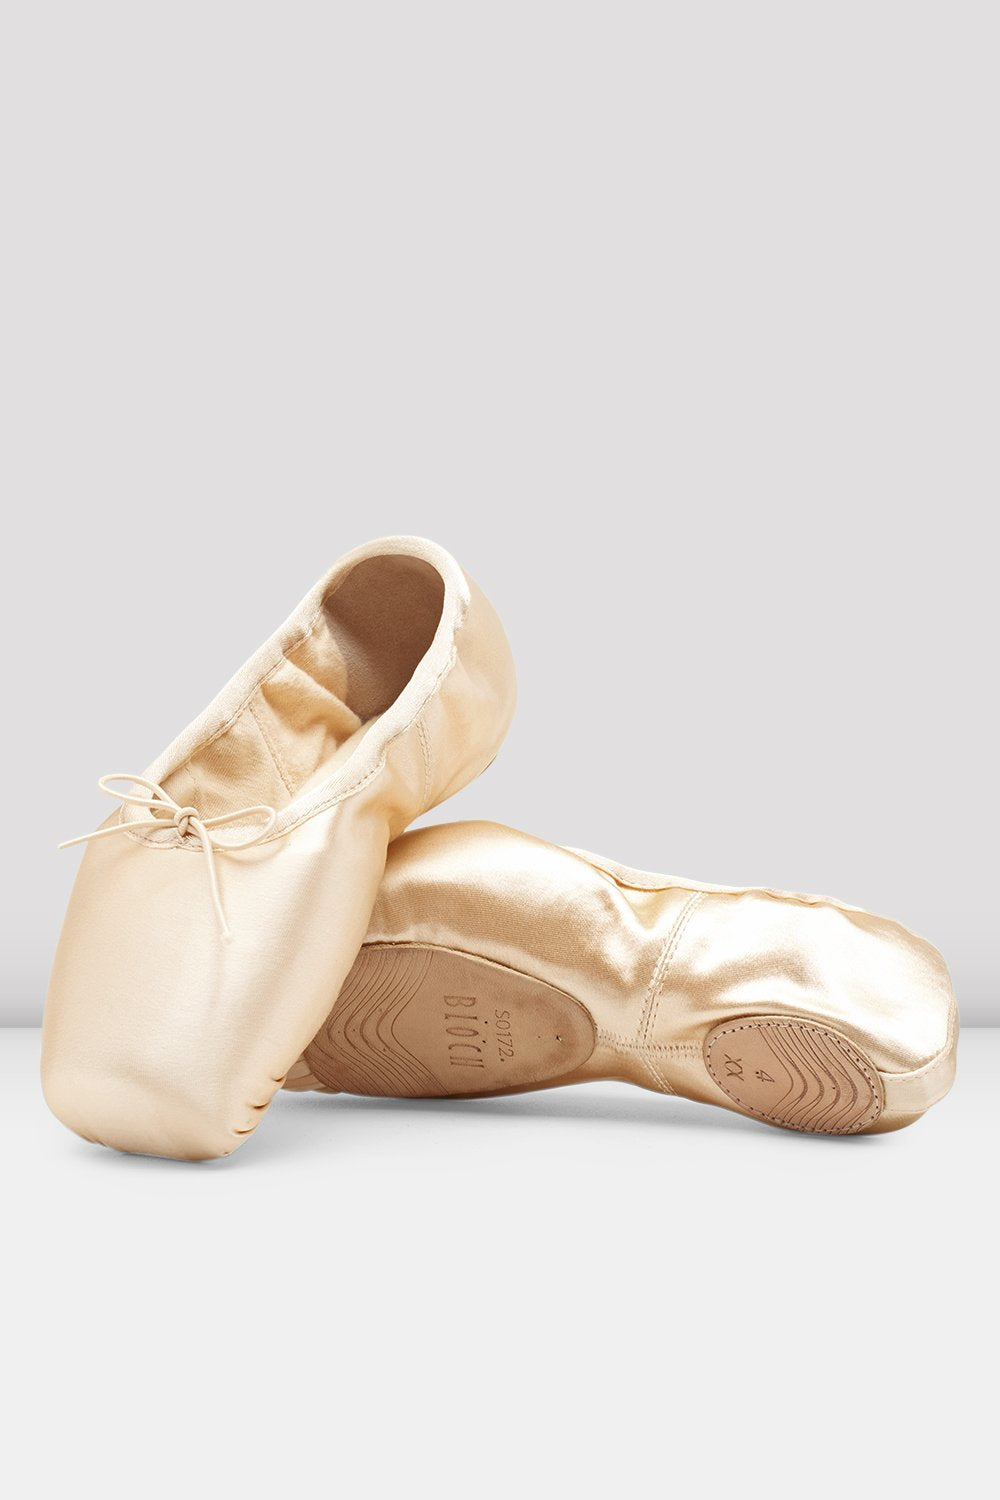 Eurostretch Pointe Shoes - BLOCH US